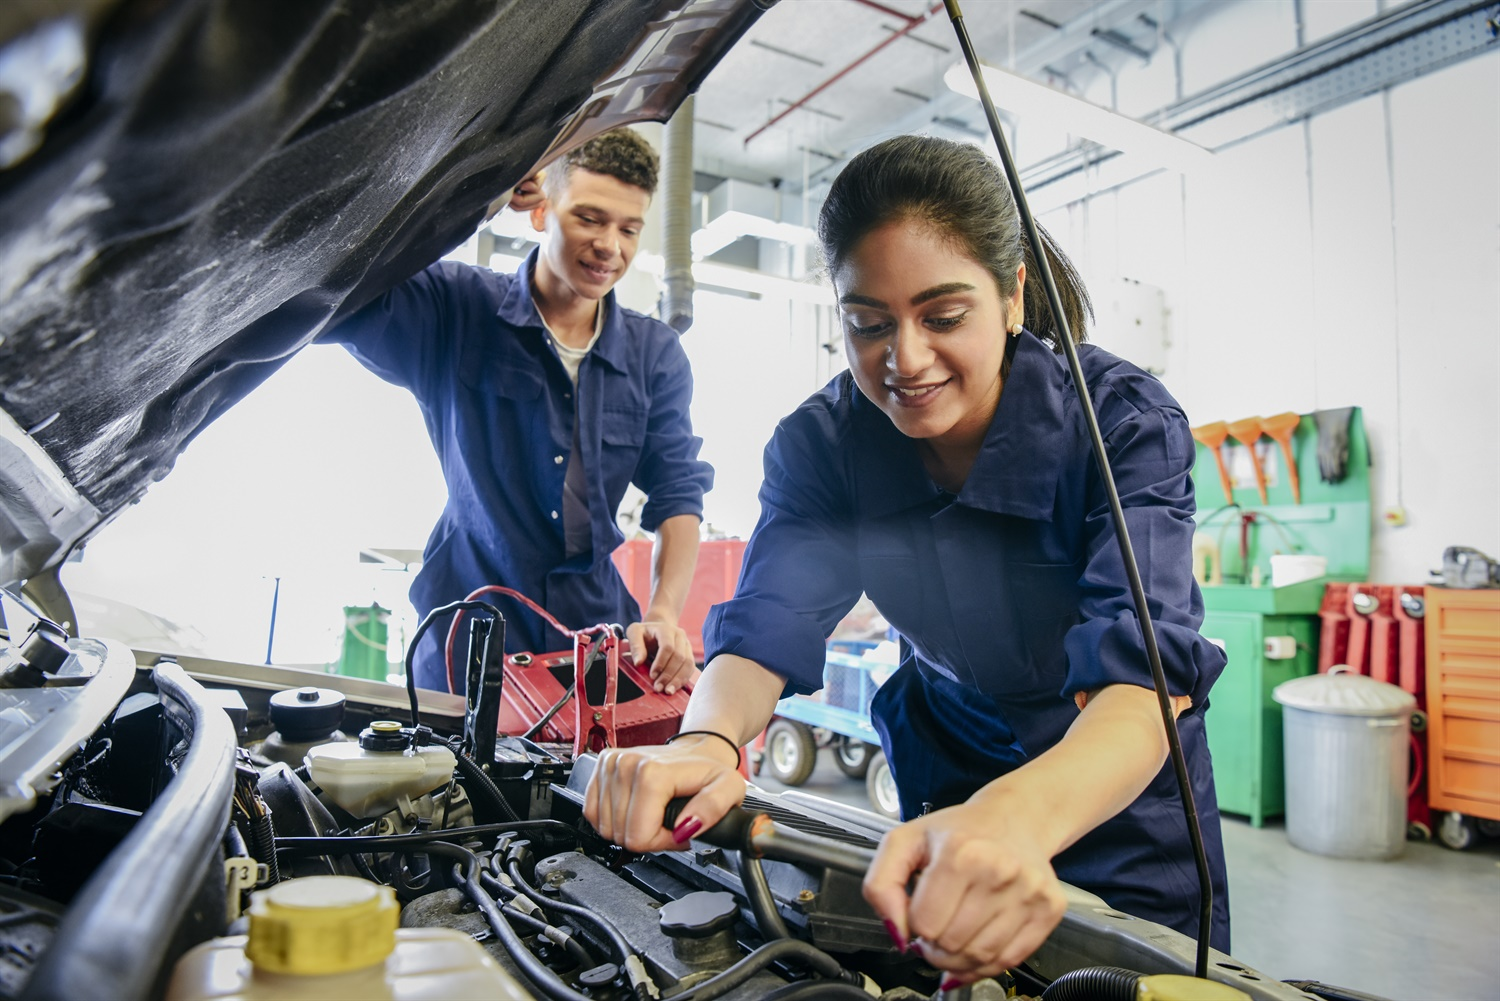 Apprenticeships on the rise across London boroughs